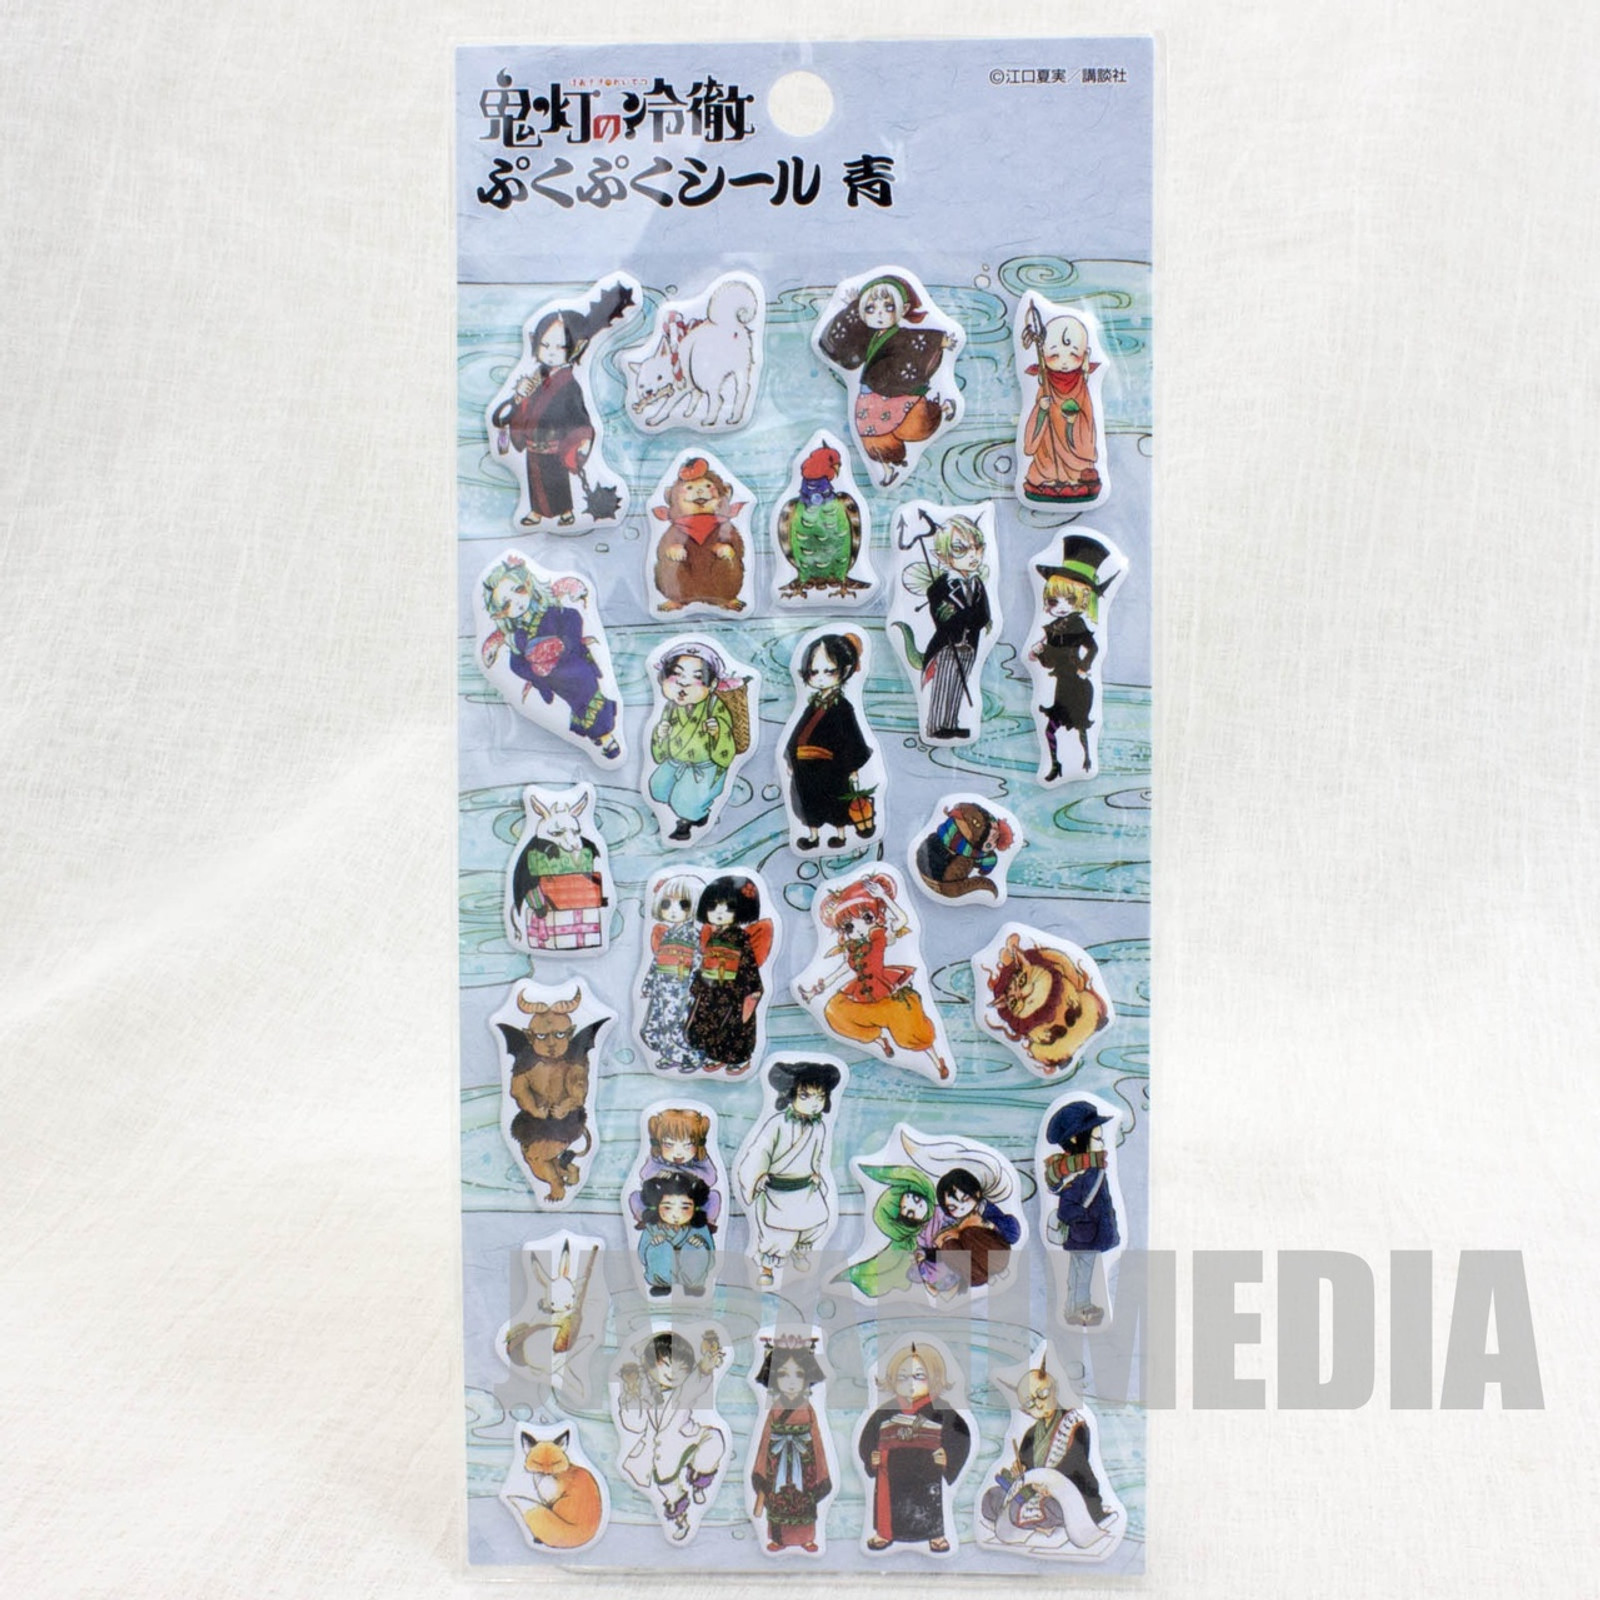 Hozuki no Reitetsu Sticker Set JAPAN ANIME MANGA